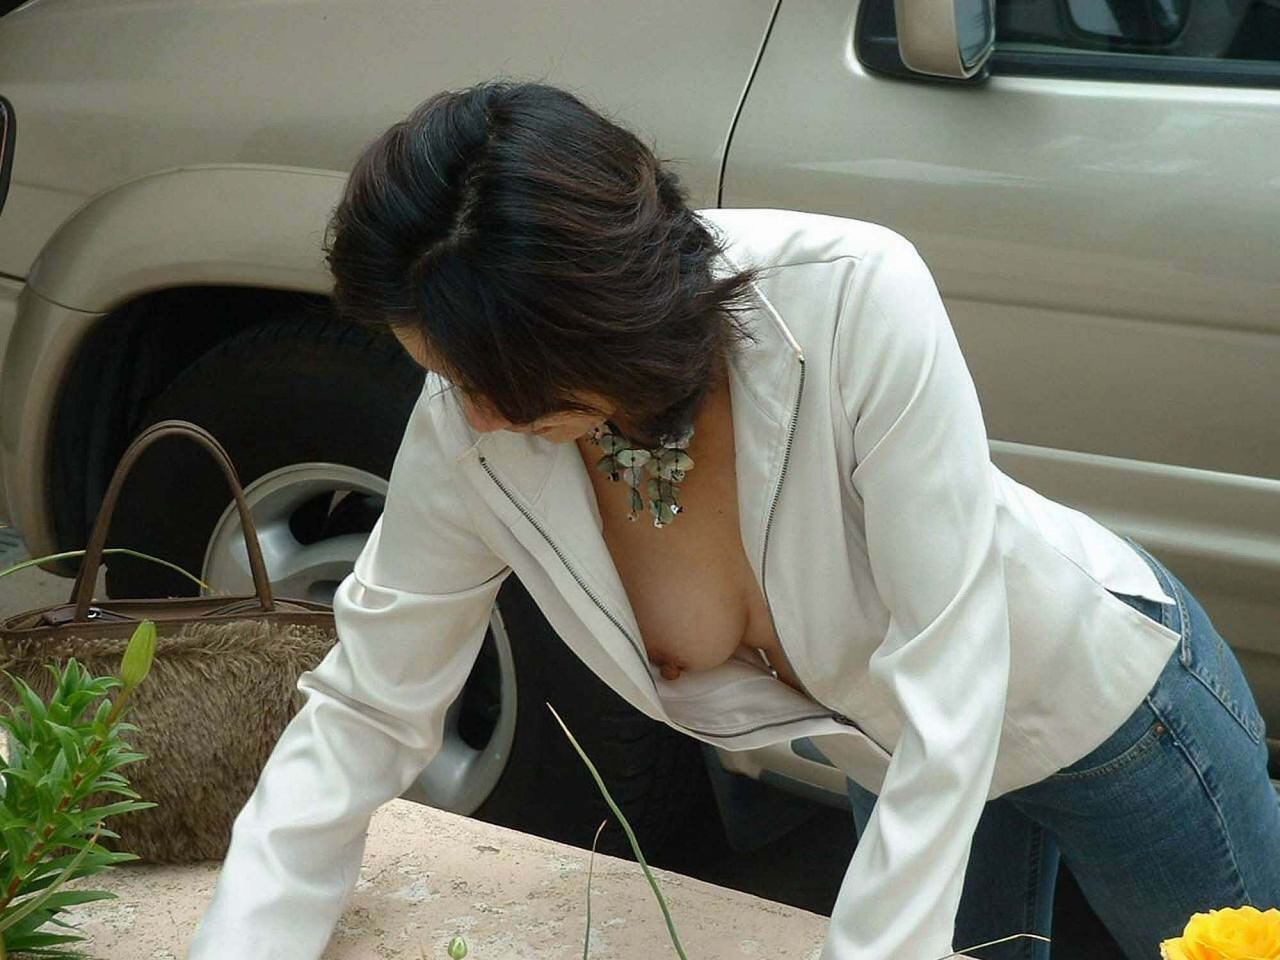 bent over downblouse